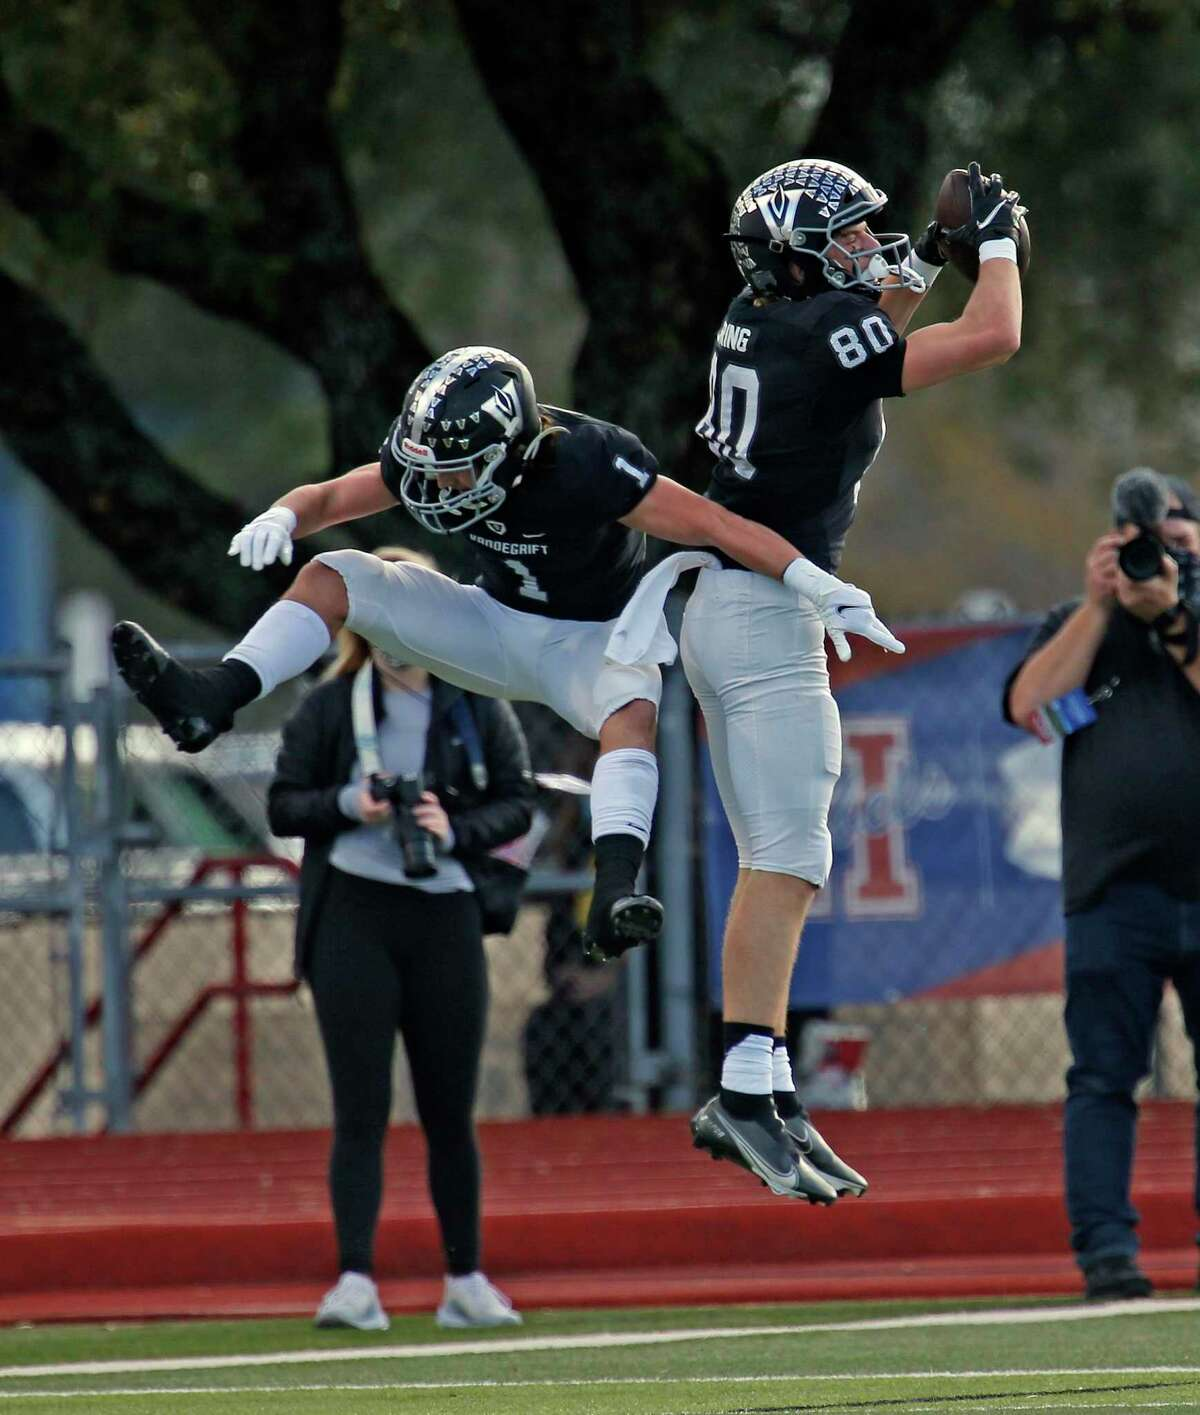 Vandegrift Taylor Dummar celebrates with WR Graylan Spring,80, after his touchdown reception. Roosevelt v Austin Vandegrift on Saturday, Dec. 19, 2020 at Shelton Stadium.